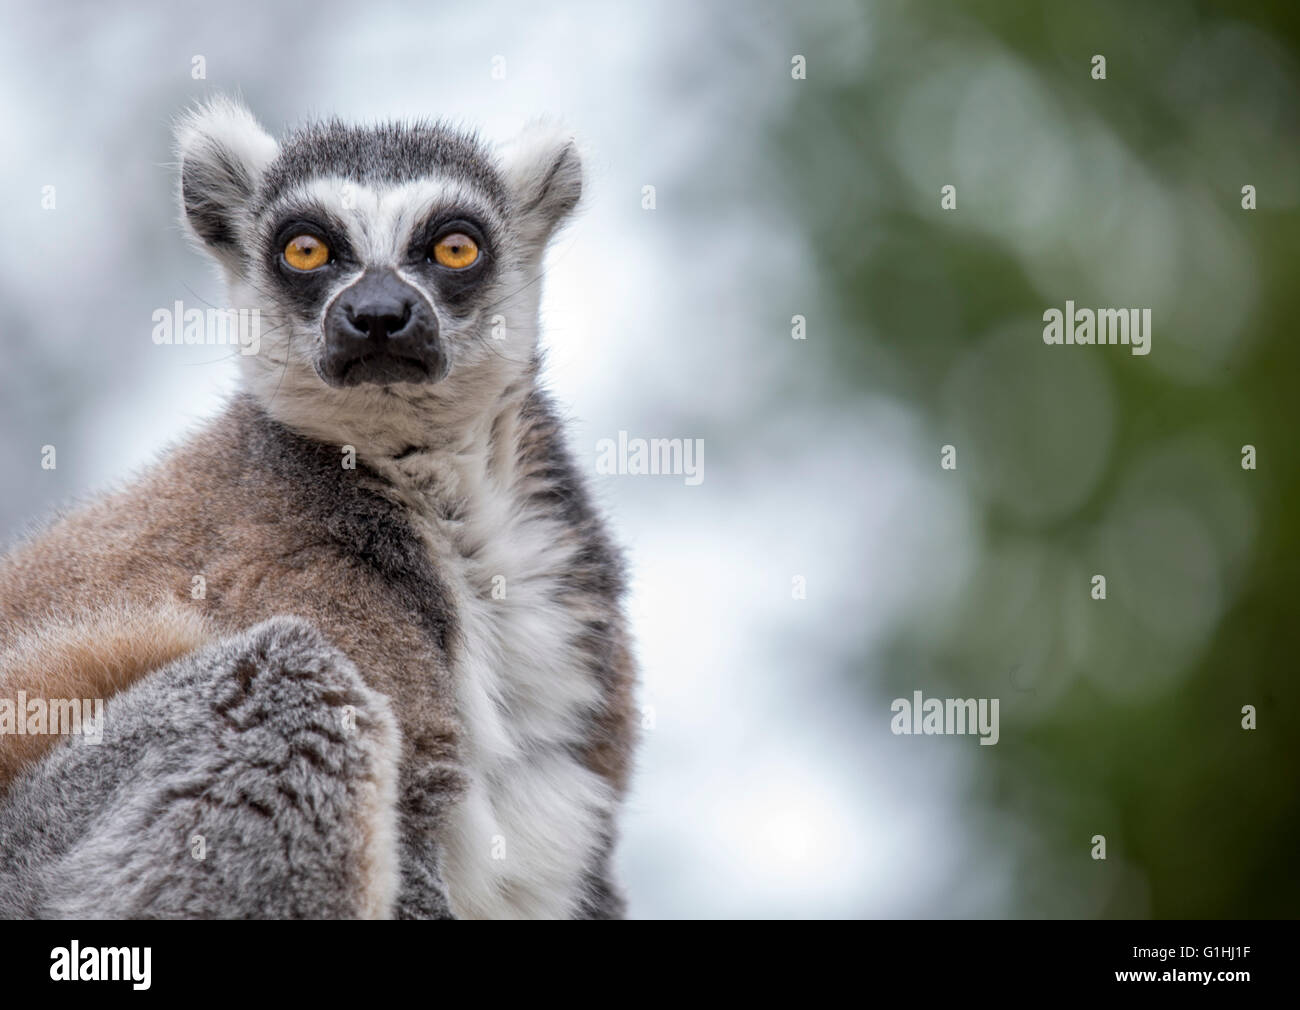 A captive  Madagascan Lemur female looks to Camera . Out of Focus background, eyes sharp in focus - Stock Image